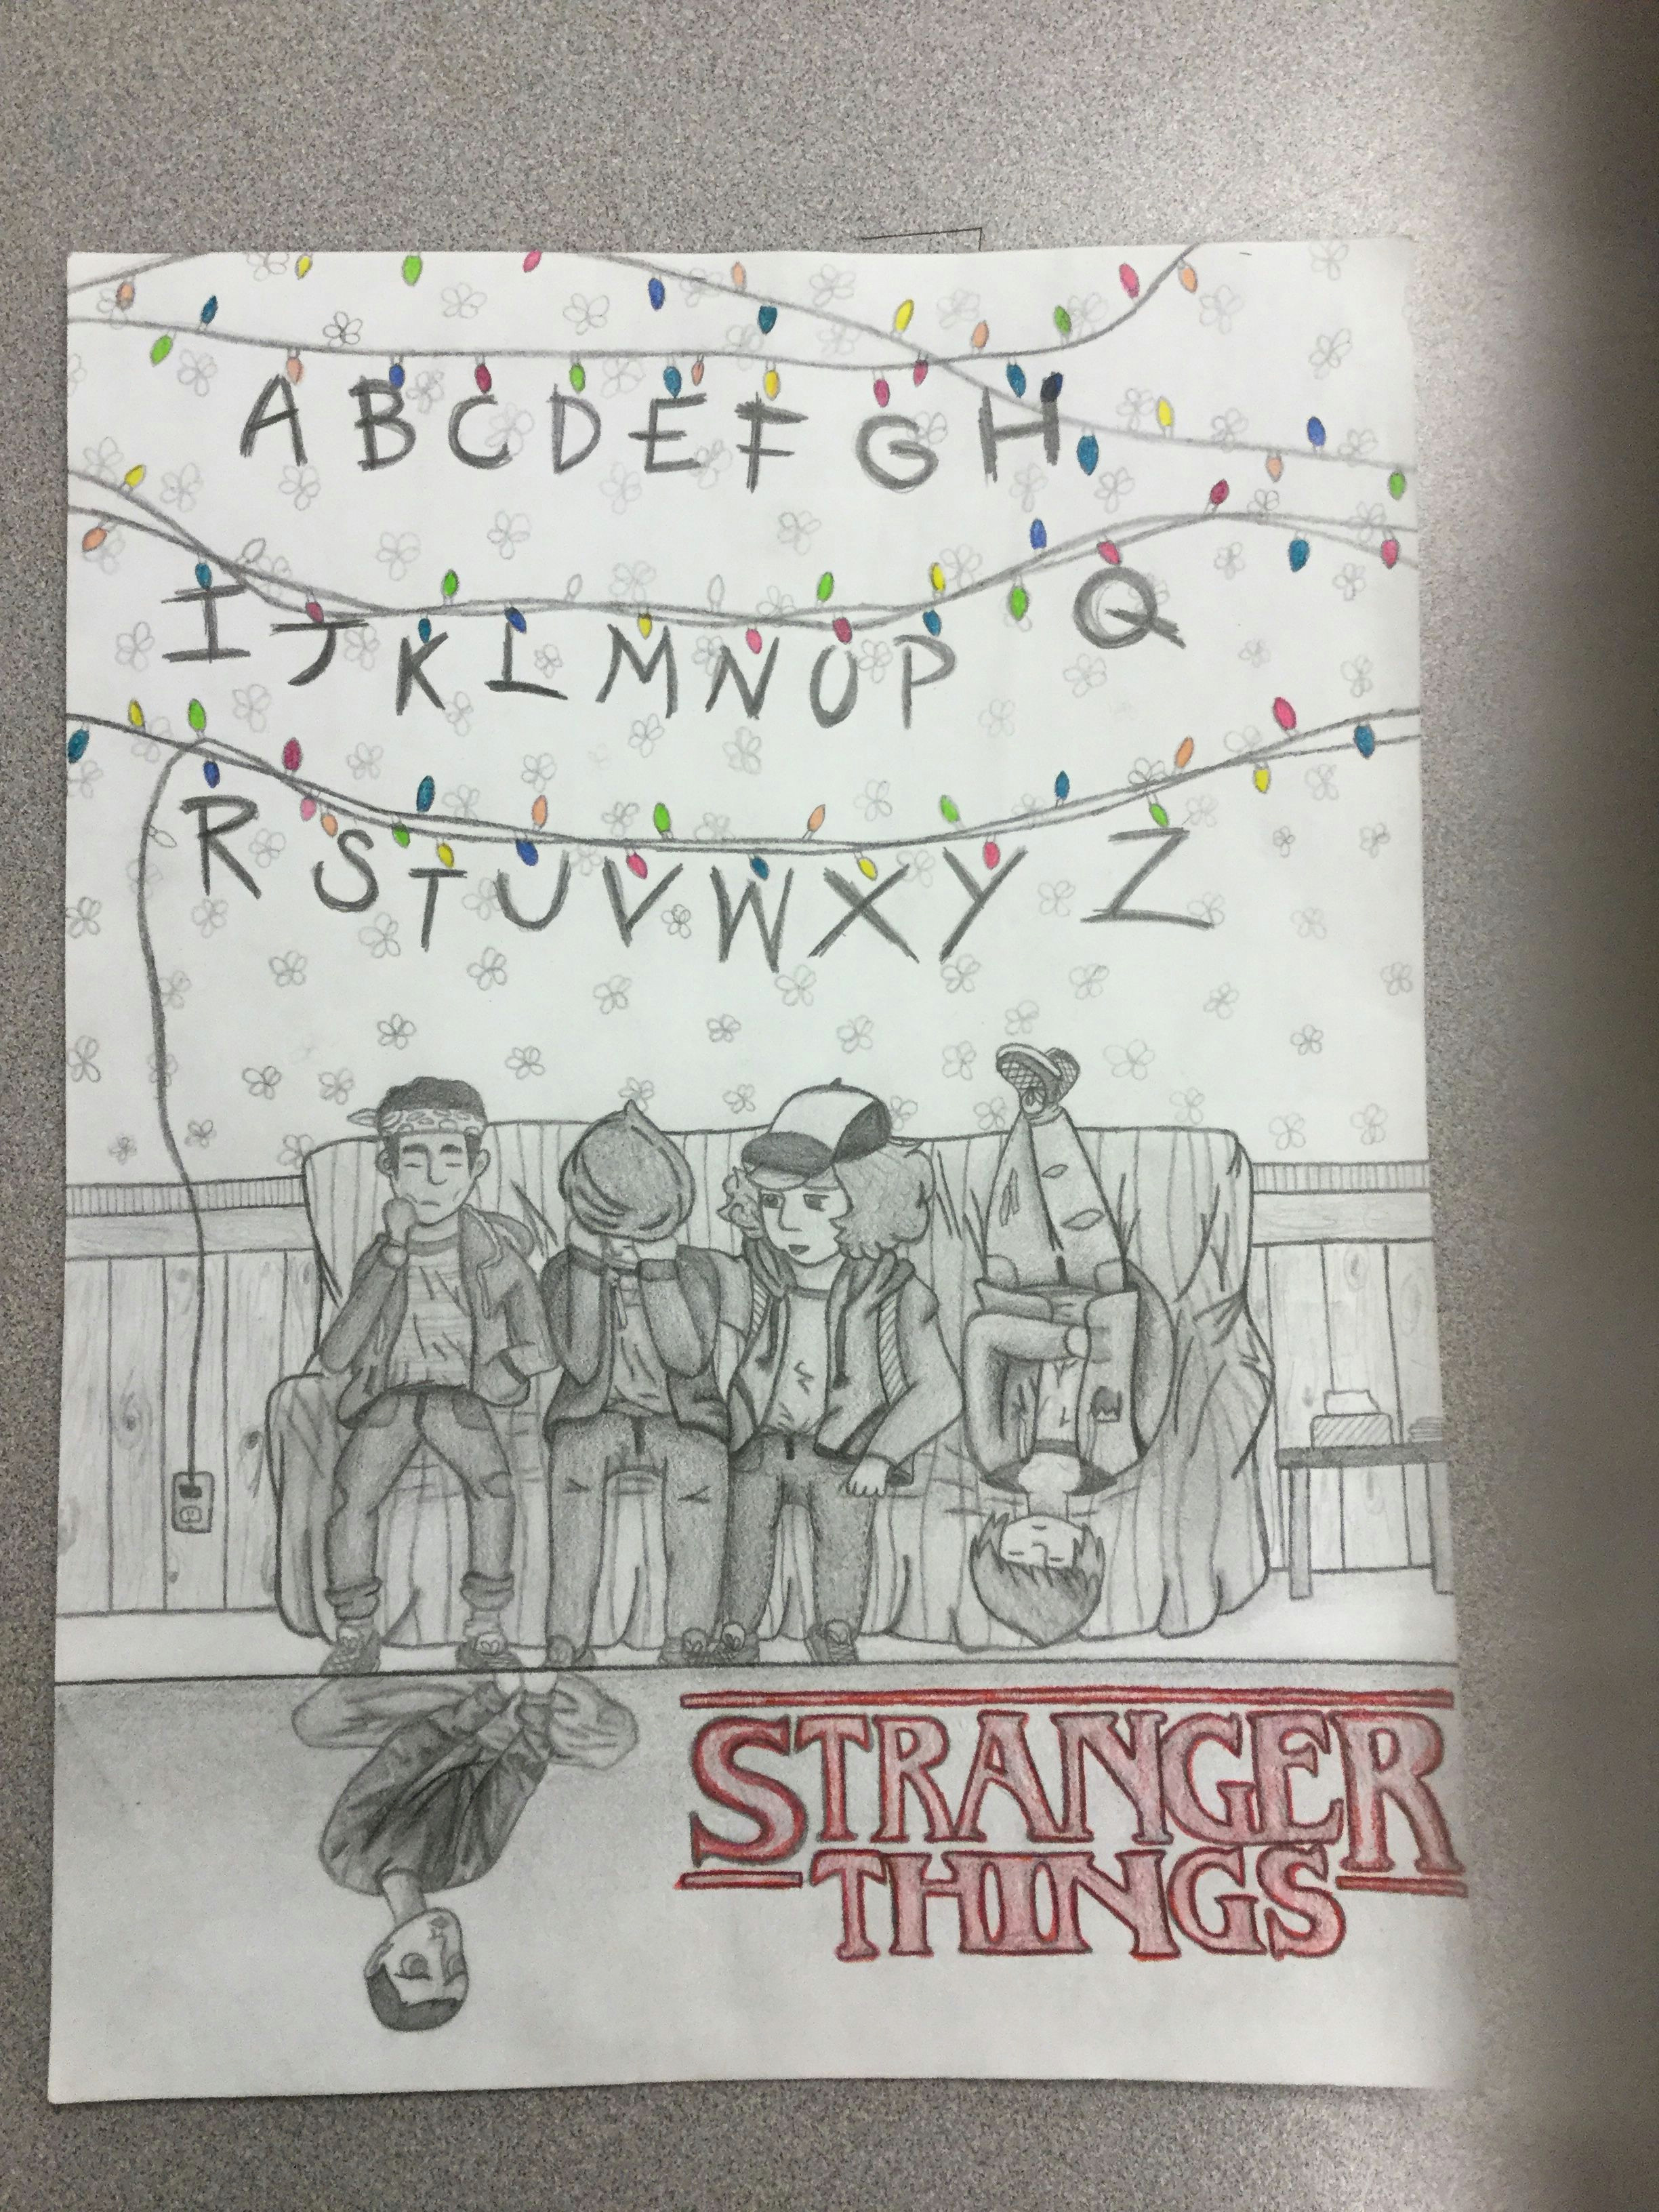 Stranger Things Drawing Pinterest My Stranger Things Drawing Don T Look at 11 Her Face is Weird